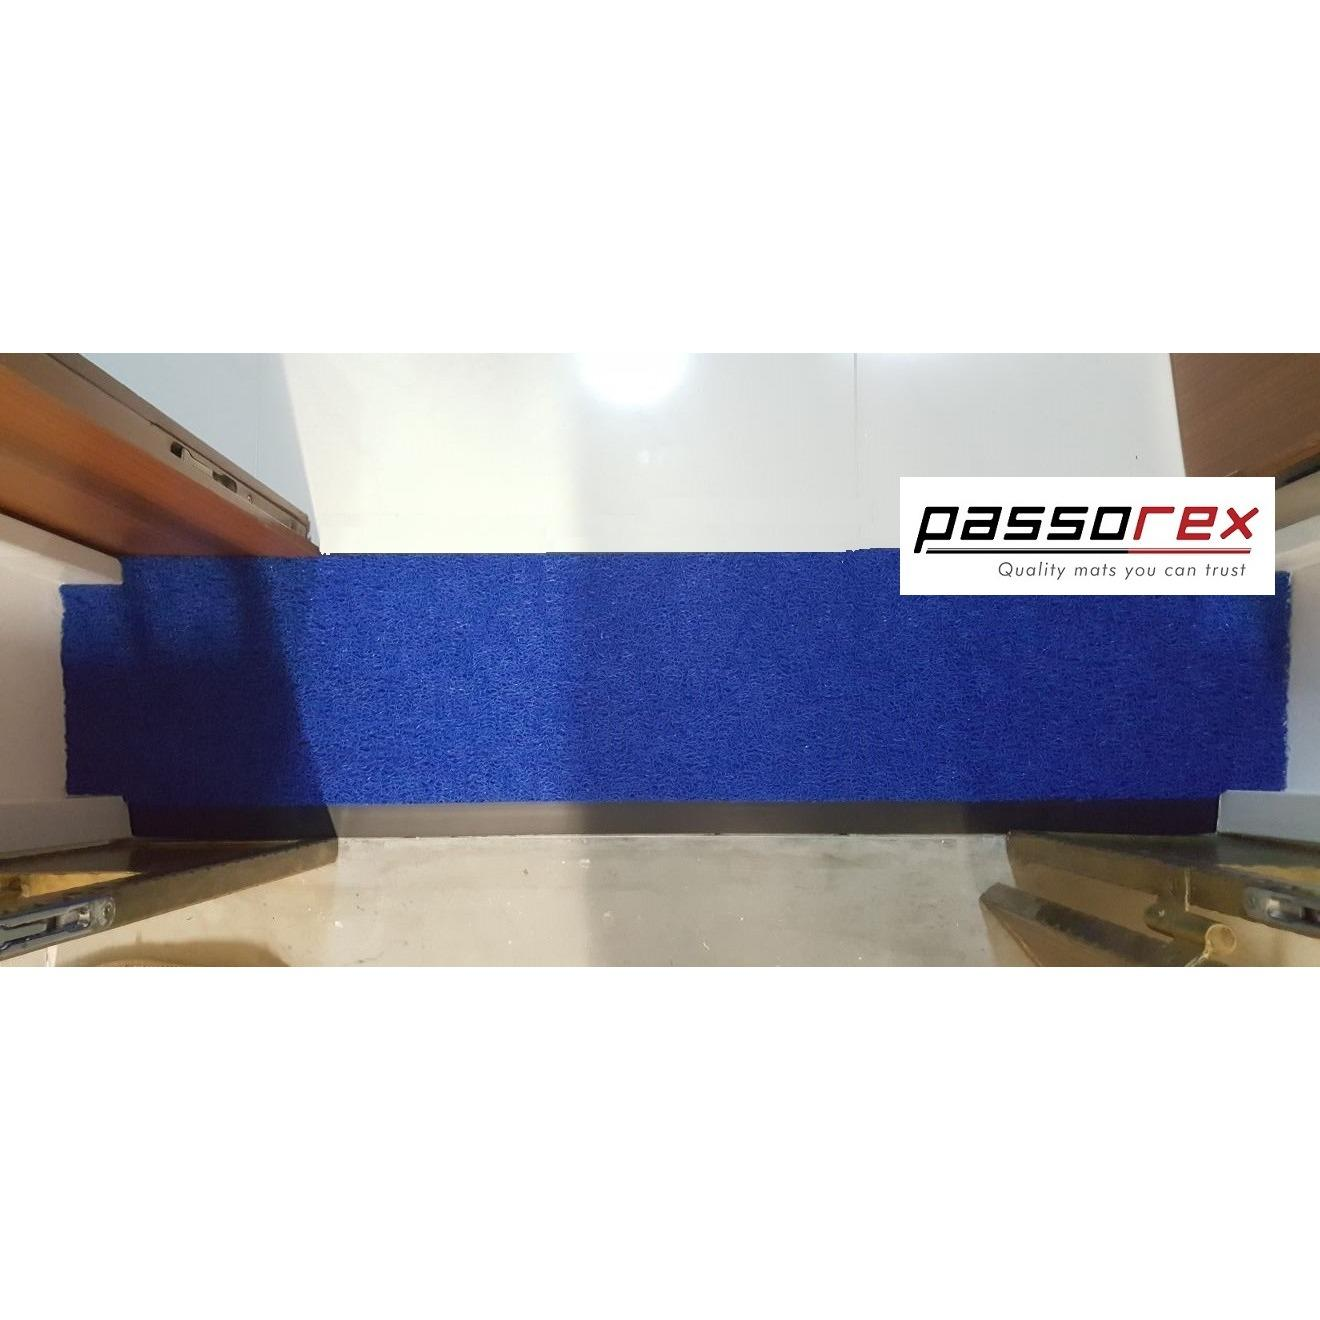 Review Passorex Door Gap Coil Mat With Rubber Edge Prxdgme1202913 Blue On Singapore